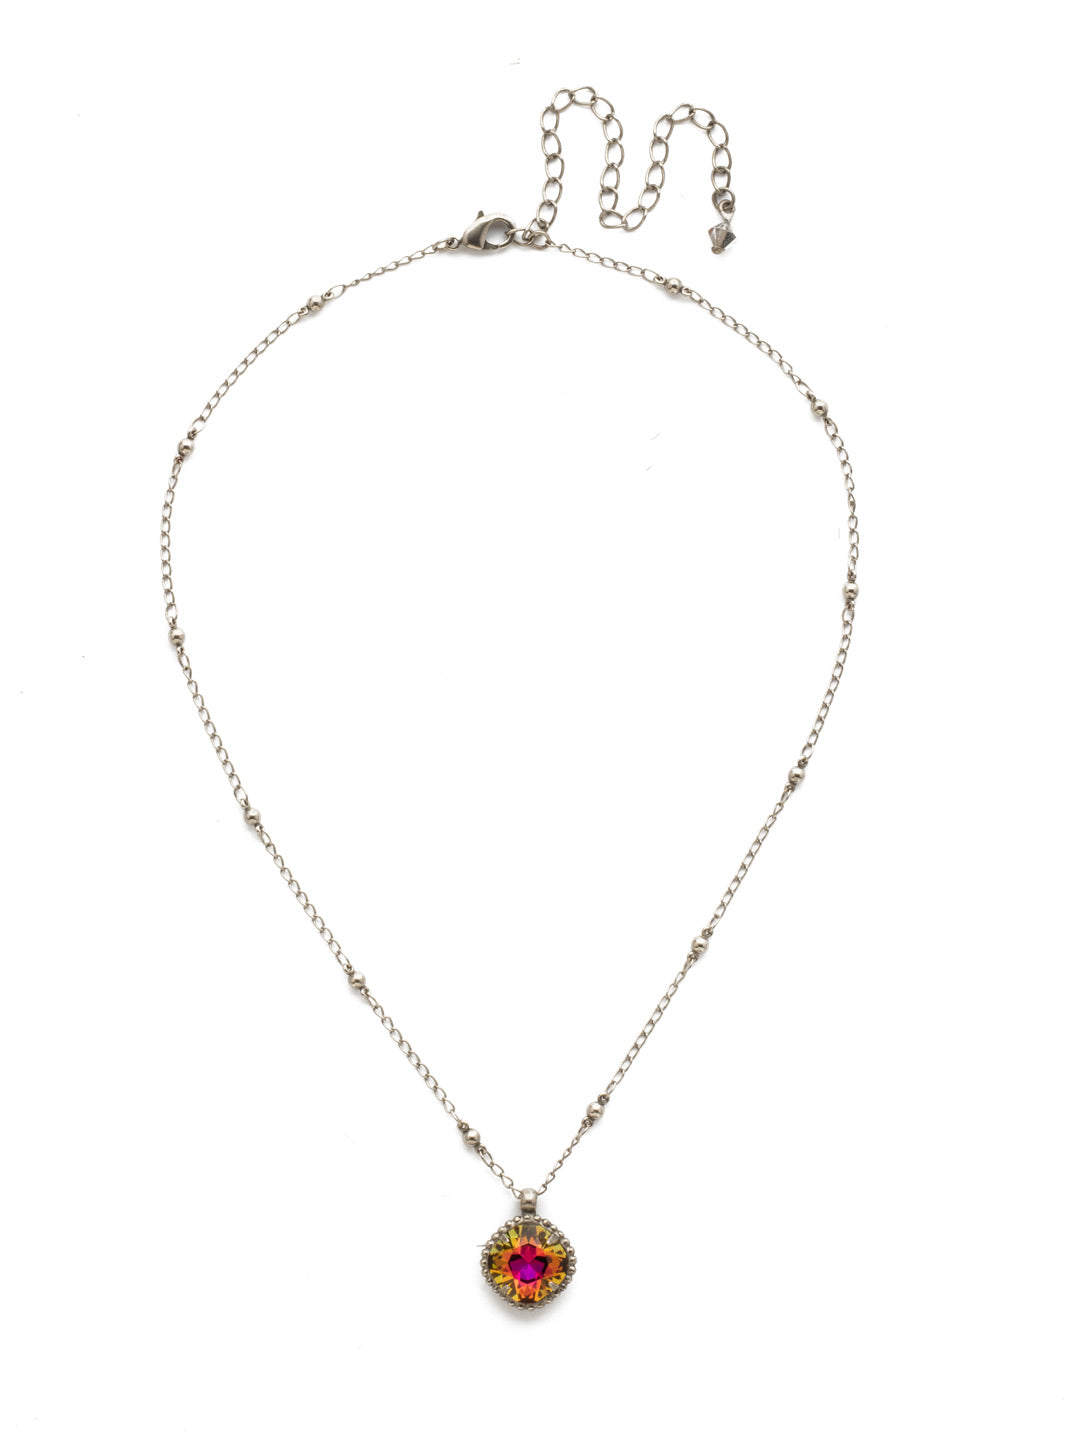 Cushion-Cut Solitaire Necklace - Sorrelli Essentials - NDS50ASVO